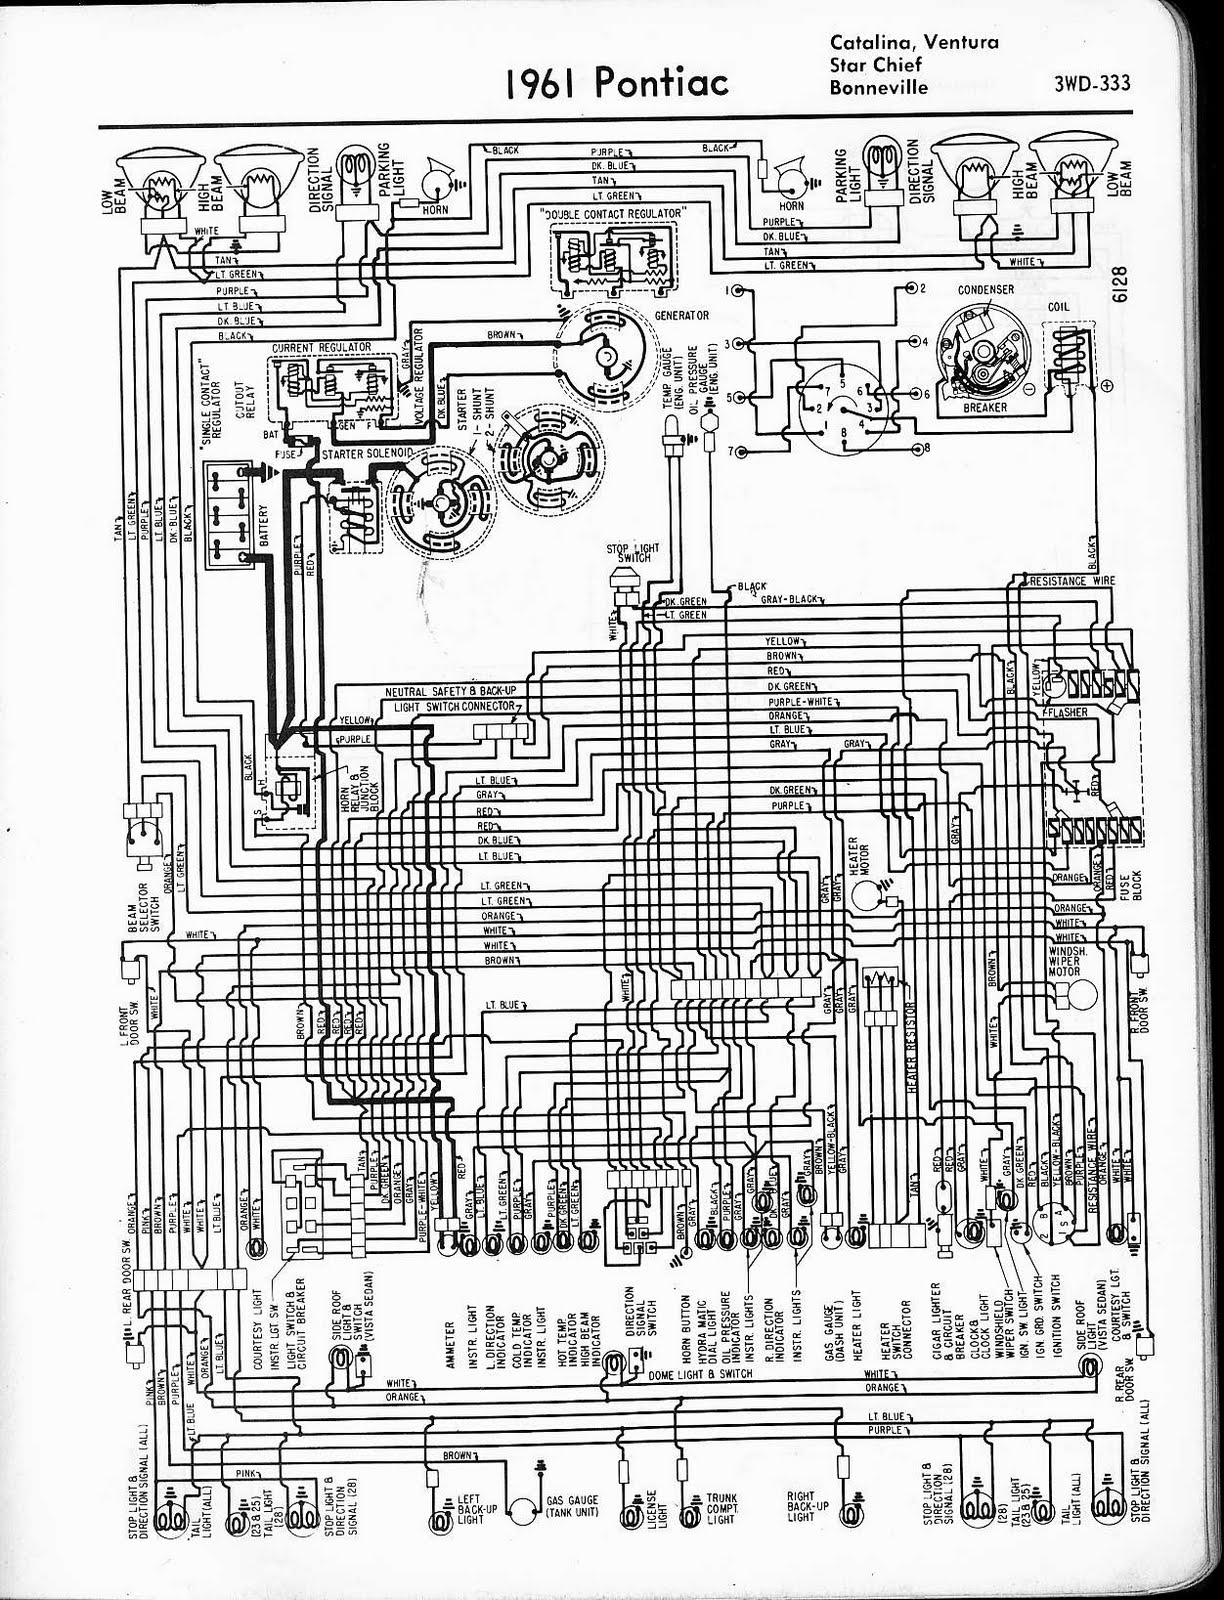 diagram] 1967 pontiac catalina wiring diagram full version hd quality wiring  diagram - cardiagramsq.itwin.it  itwin.it